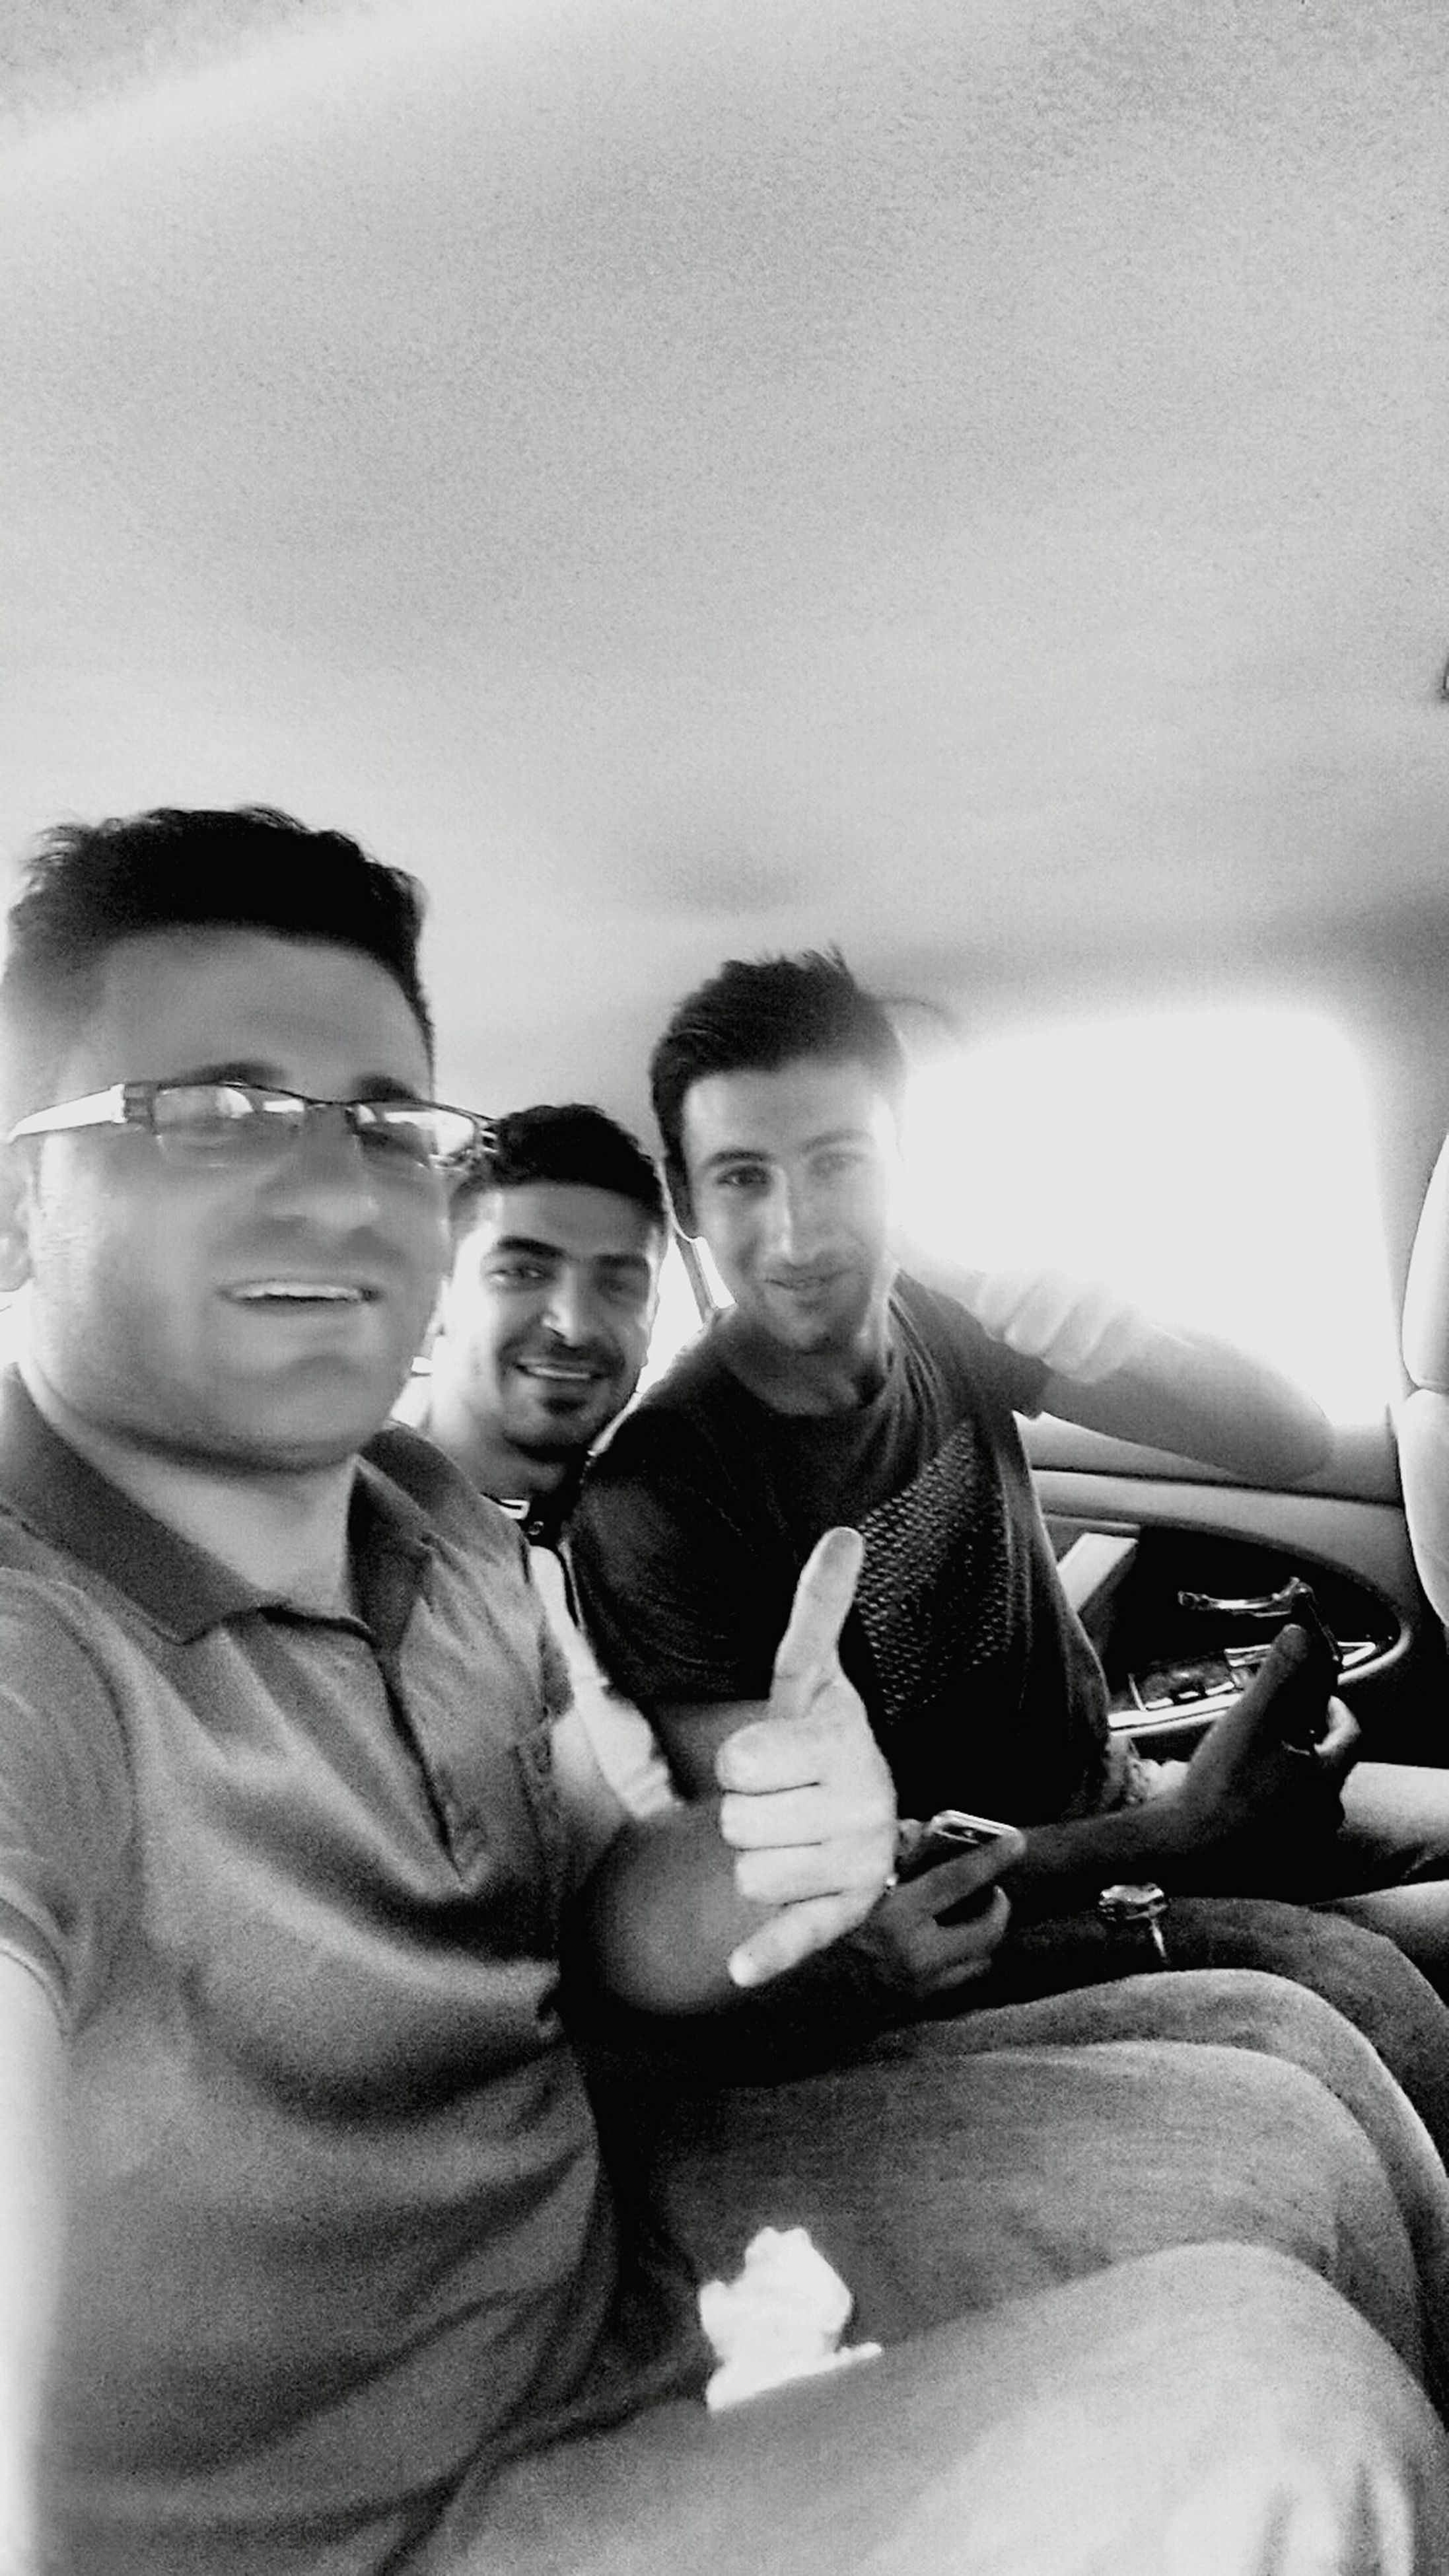 lifestyles, person, togetherness, leisure activity, bonding, portrait, looking at camera, young adult, smiling, young men, sitting, casual clothing, front view, transportation, happiness, love, mode of transport